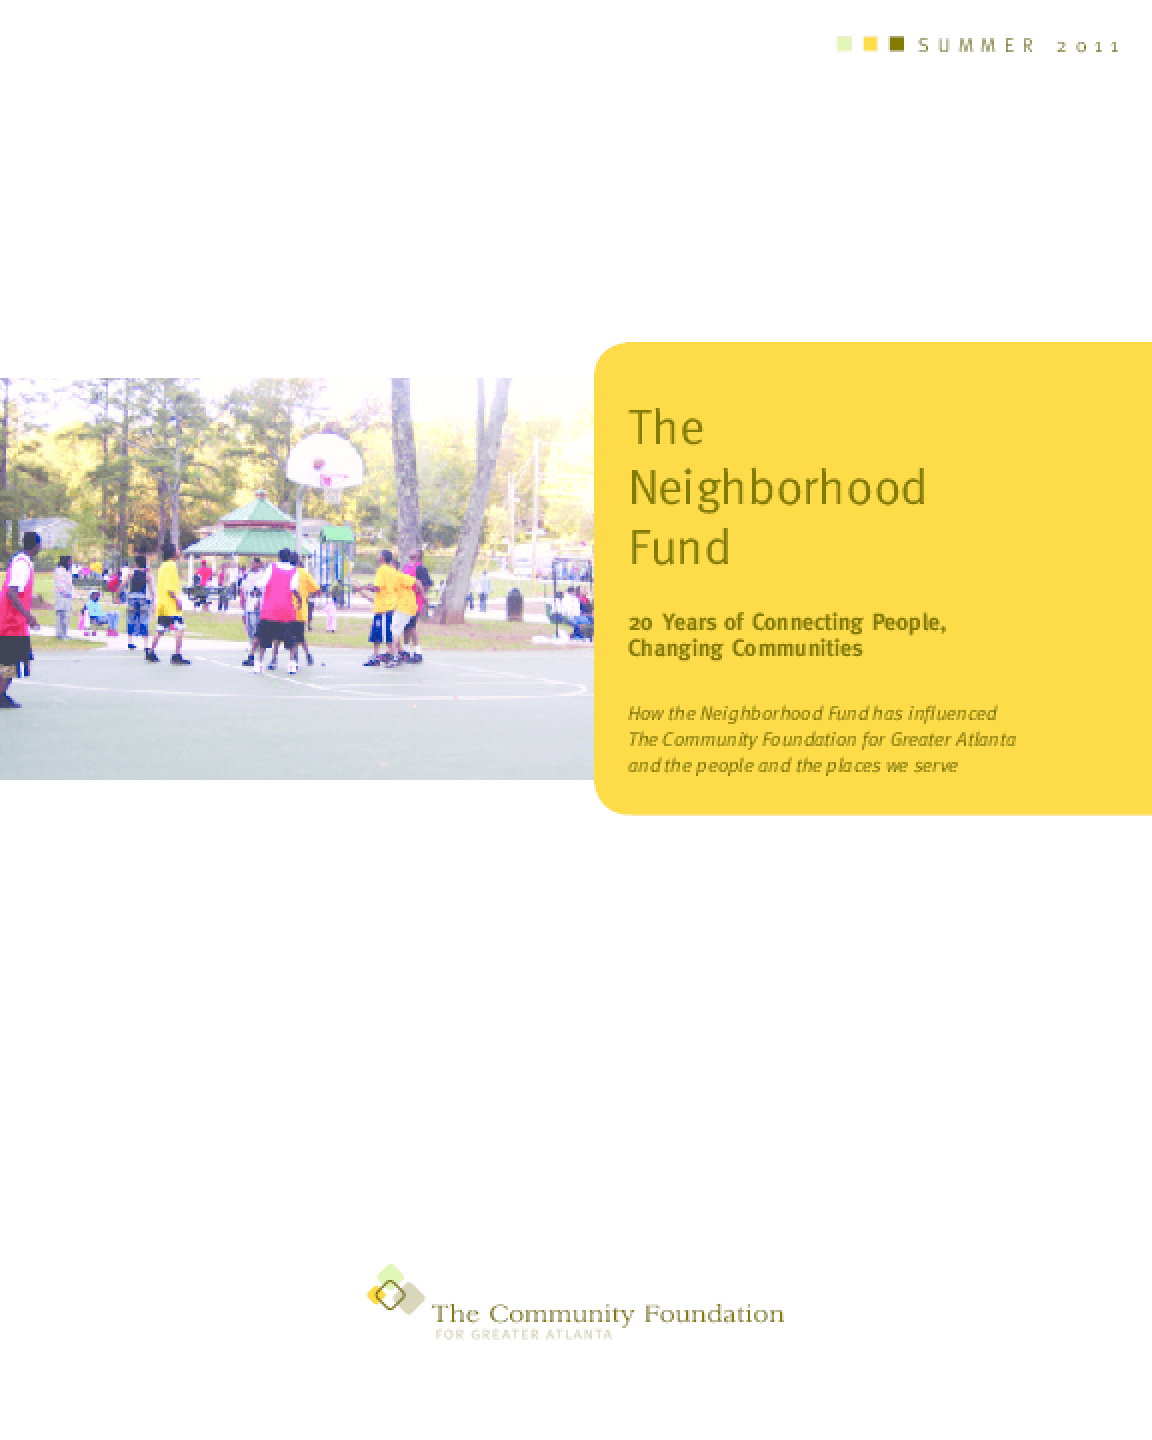 The Neighborhood Fund: 20 Years of Connecting People, Changing Communities